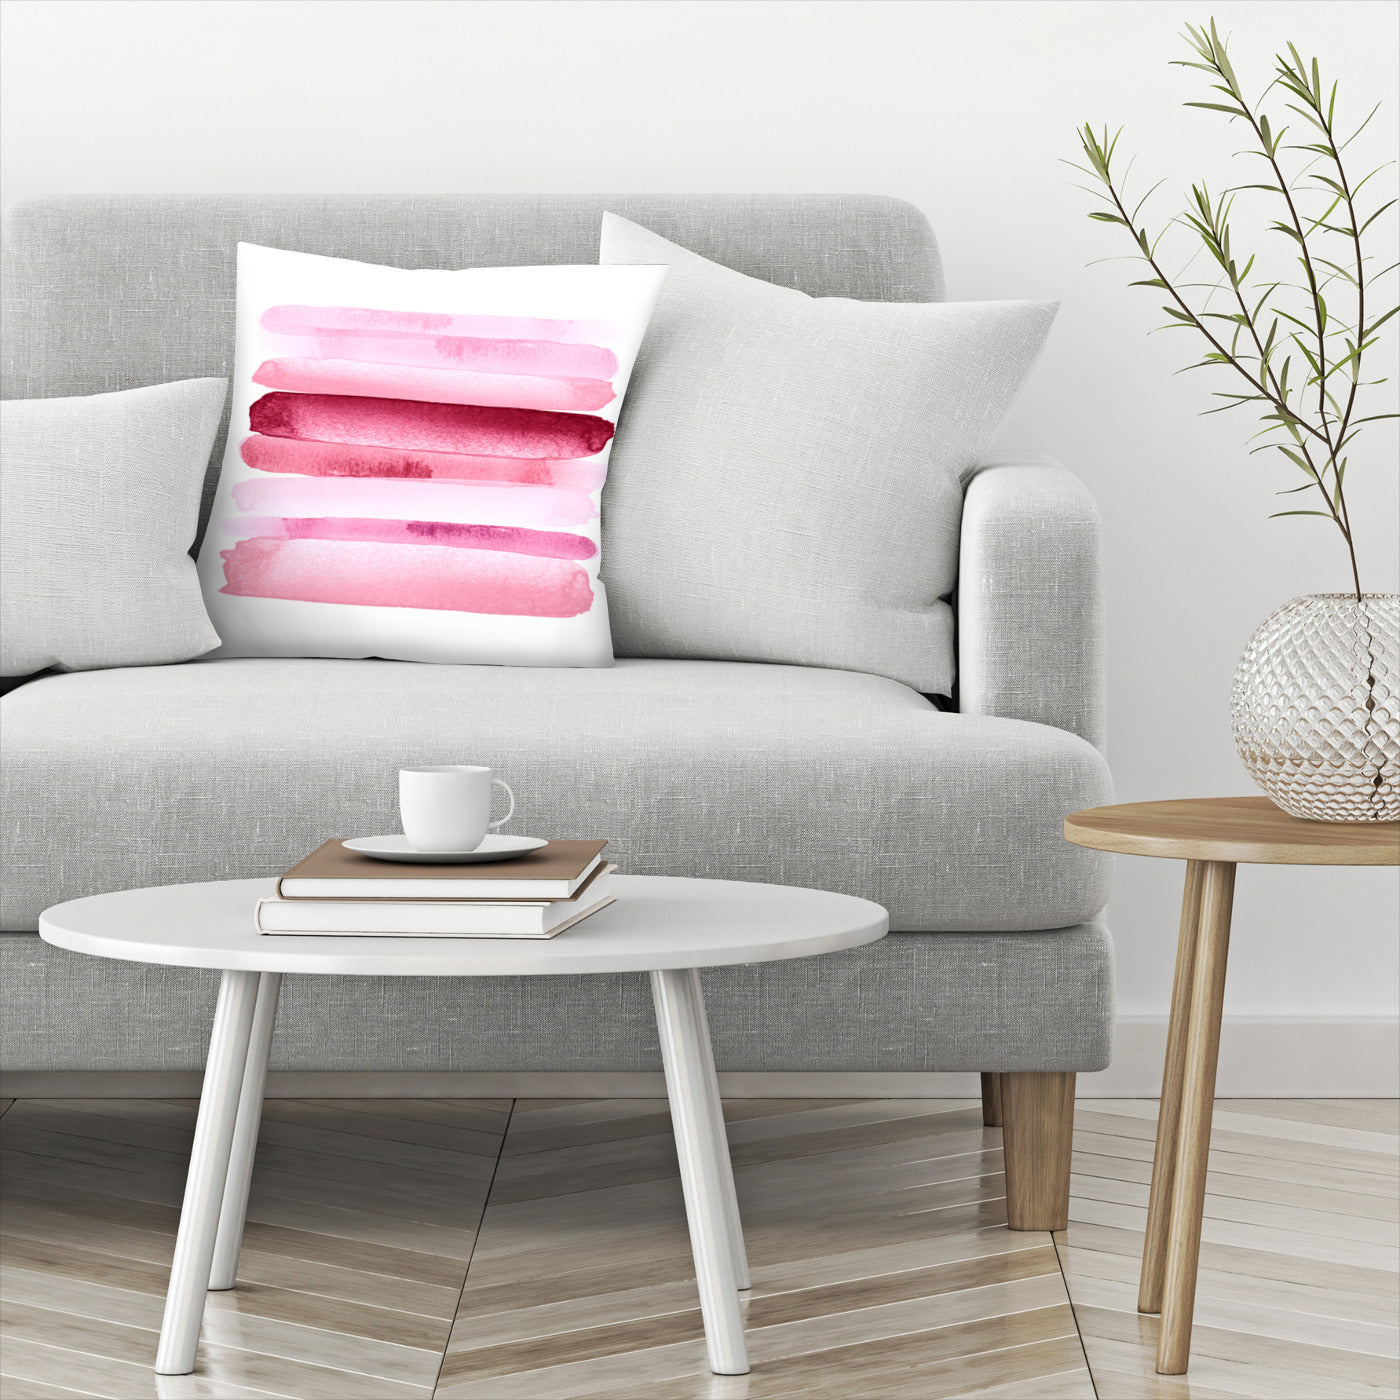 Move Forward Modern Pink by Amy Brinkman Decorative Pillow - Decorative Pillow - Americanflat